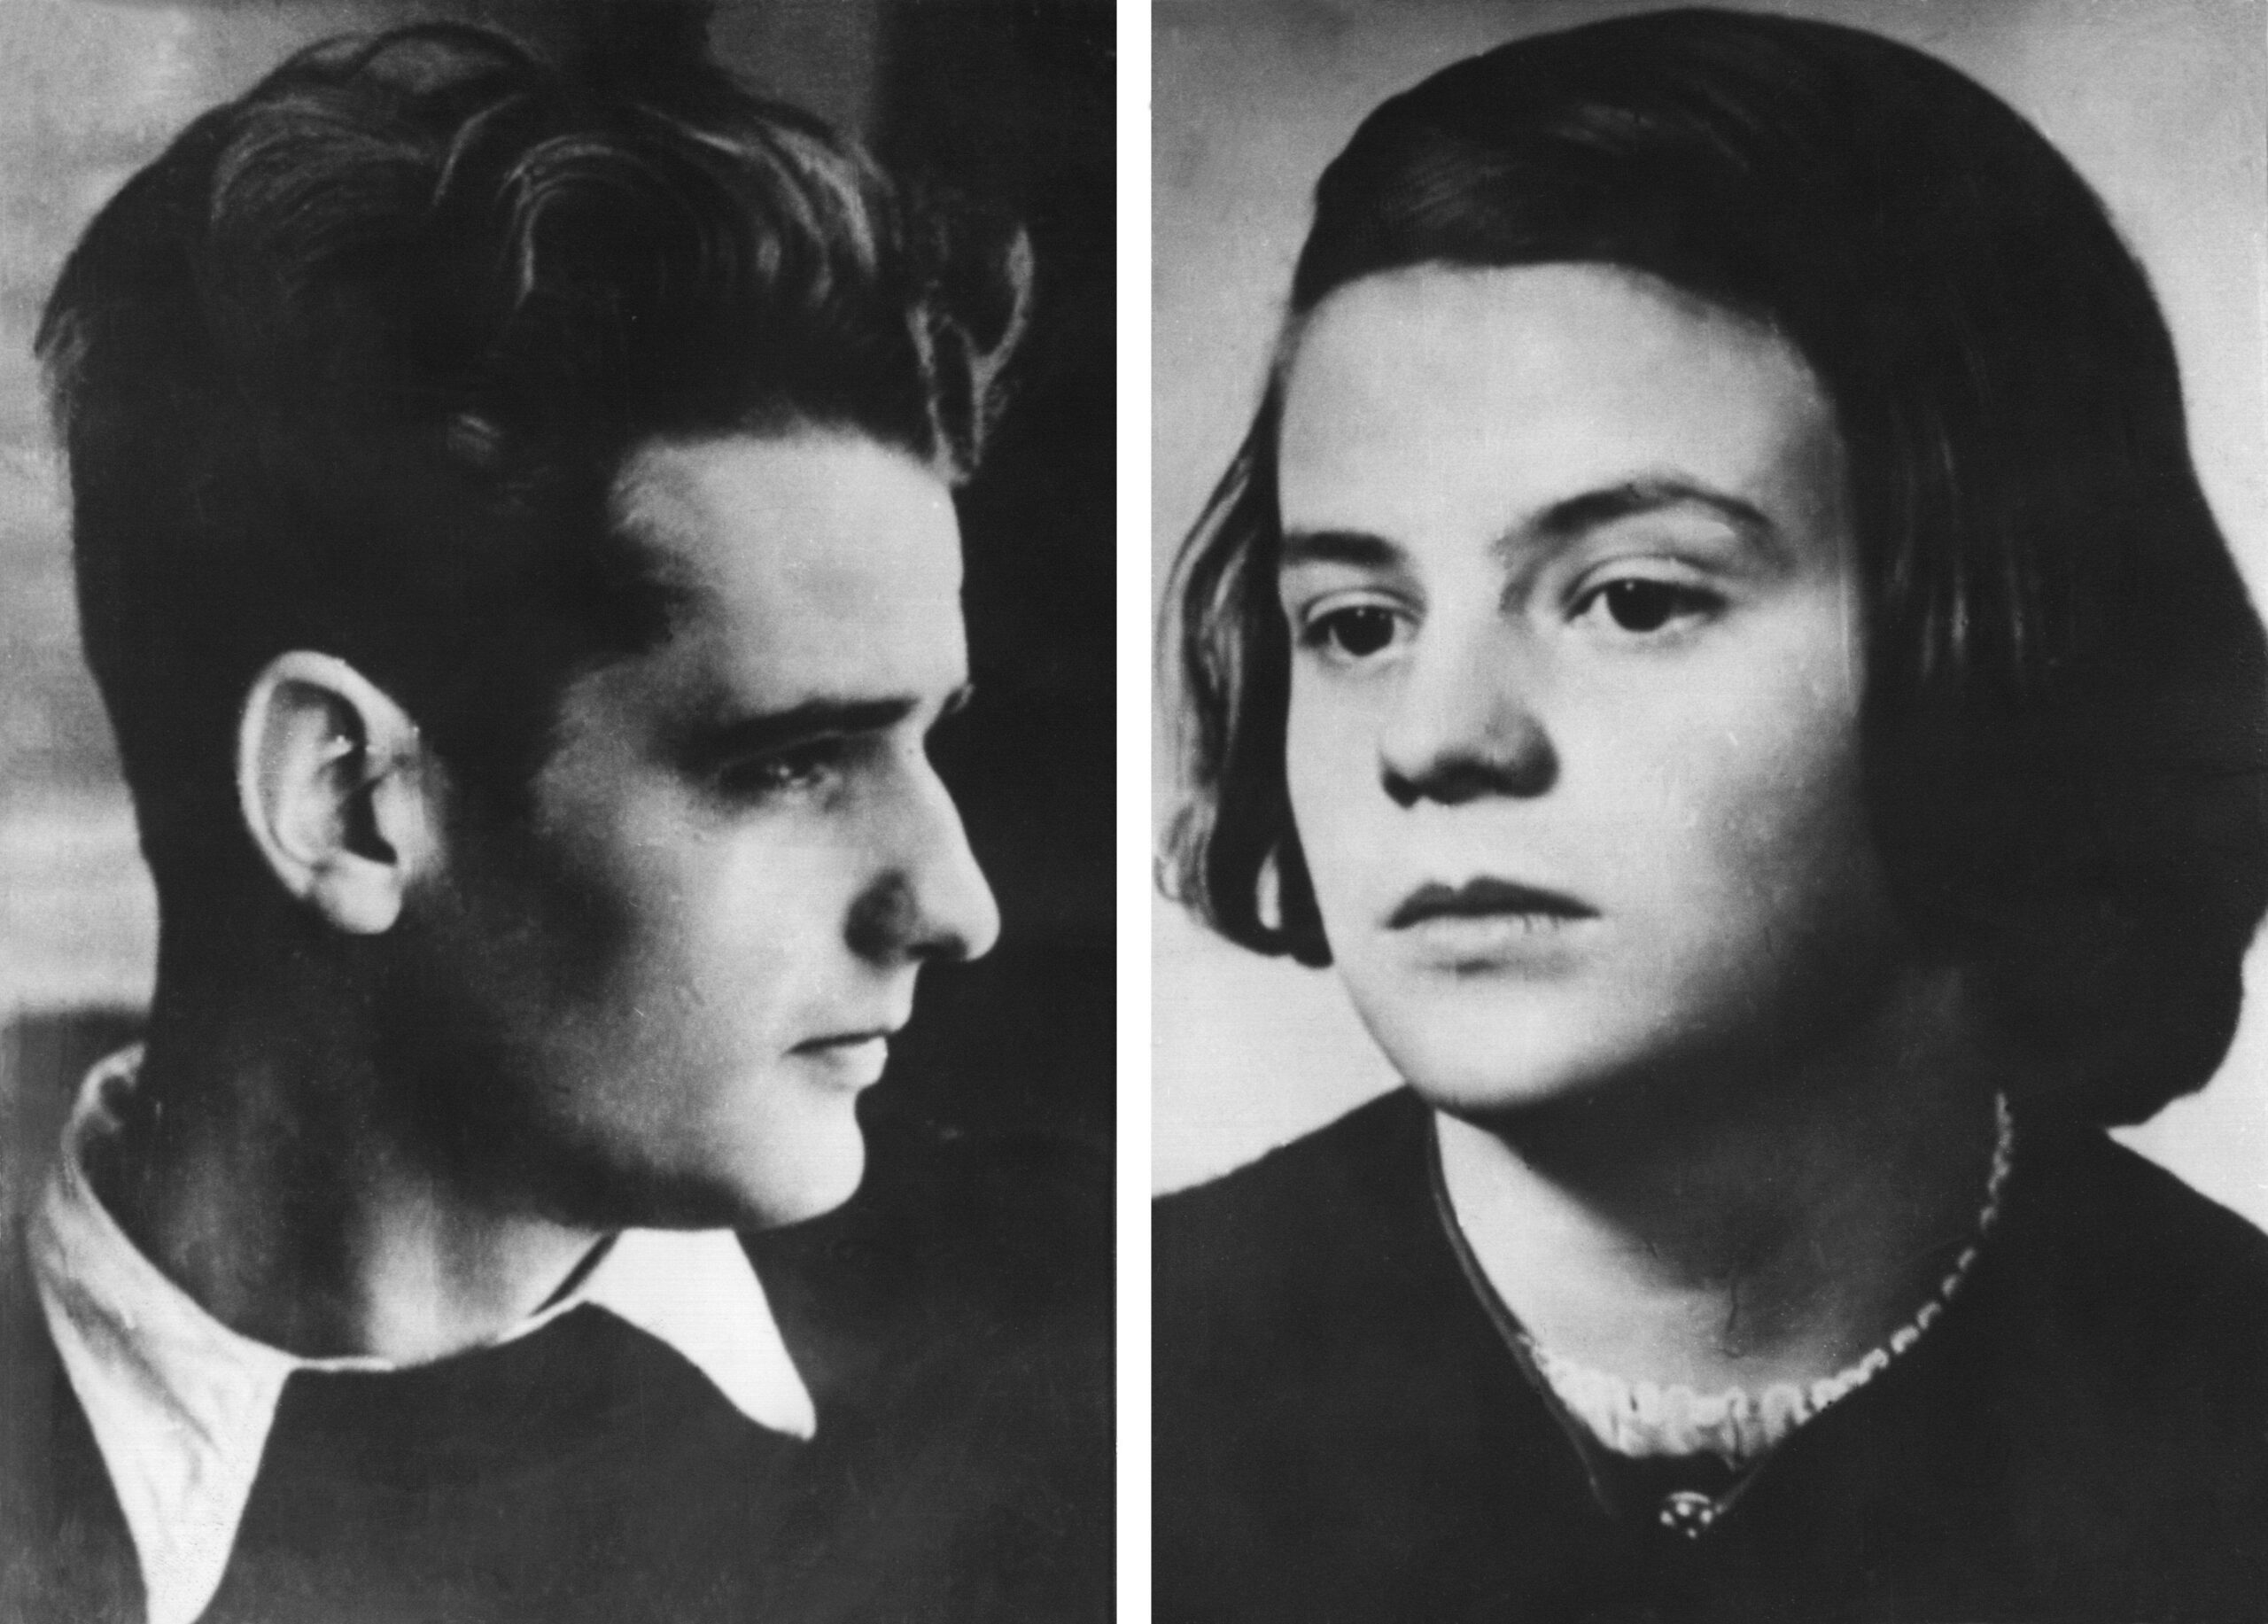 Marking the centenary of Sophie Scholl's birth